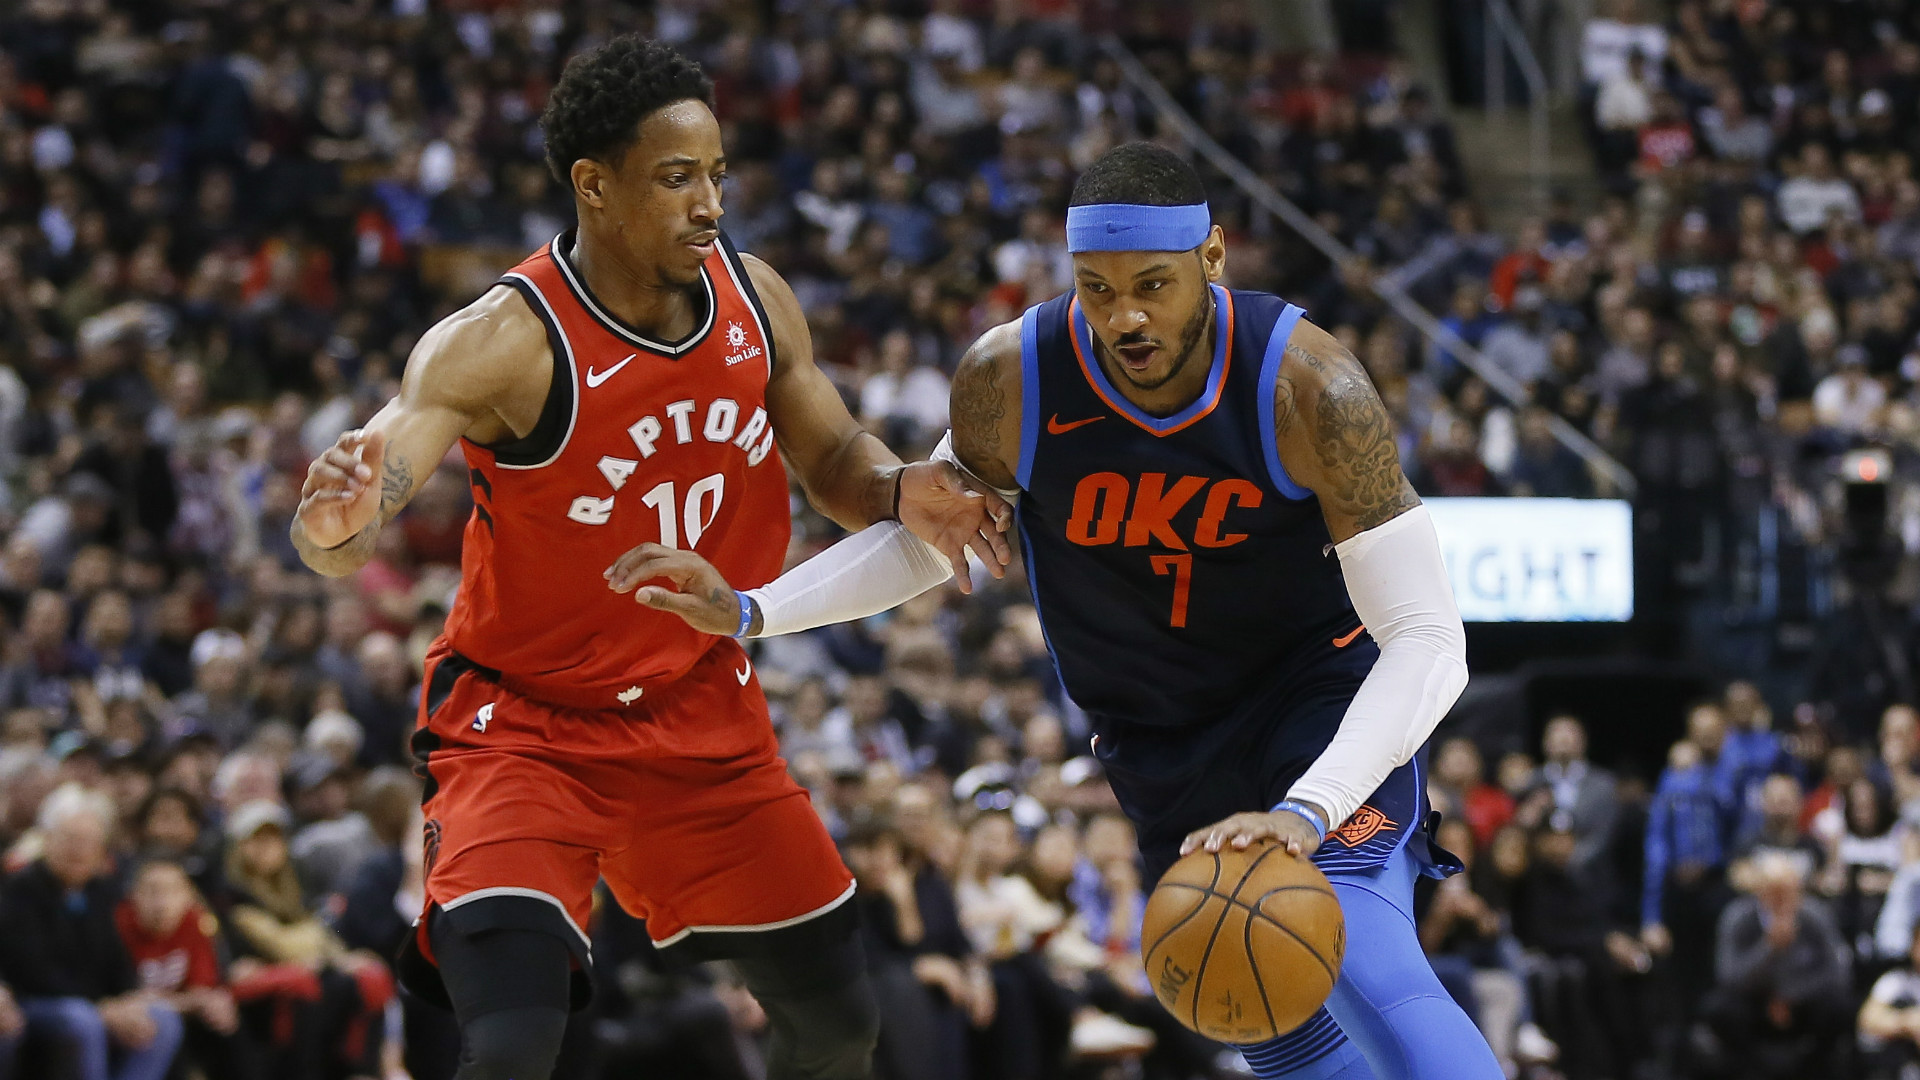 Raptors' winning streak ends on a technicality, or two